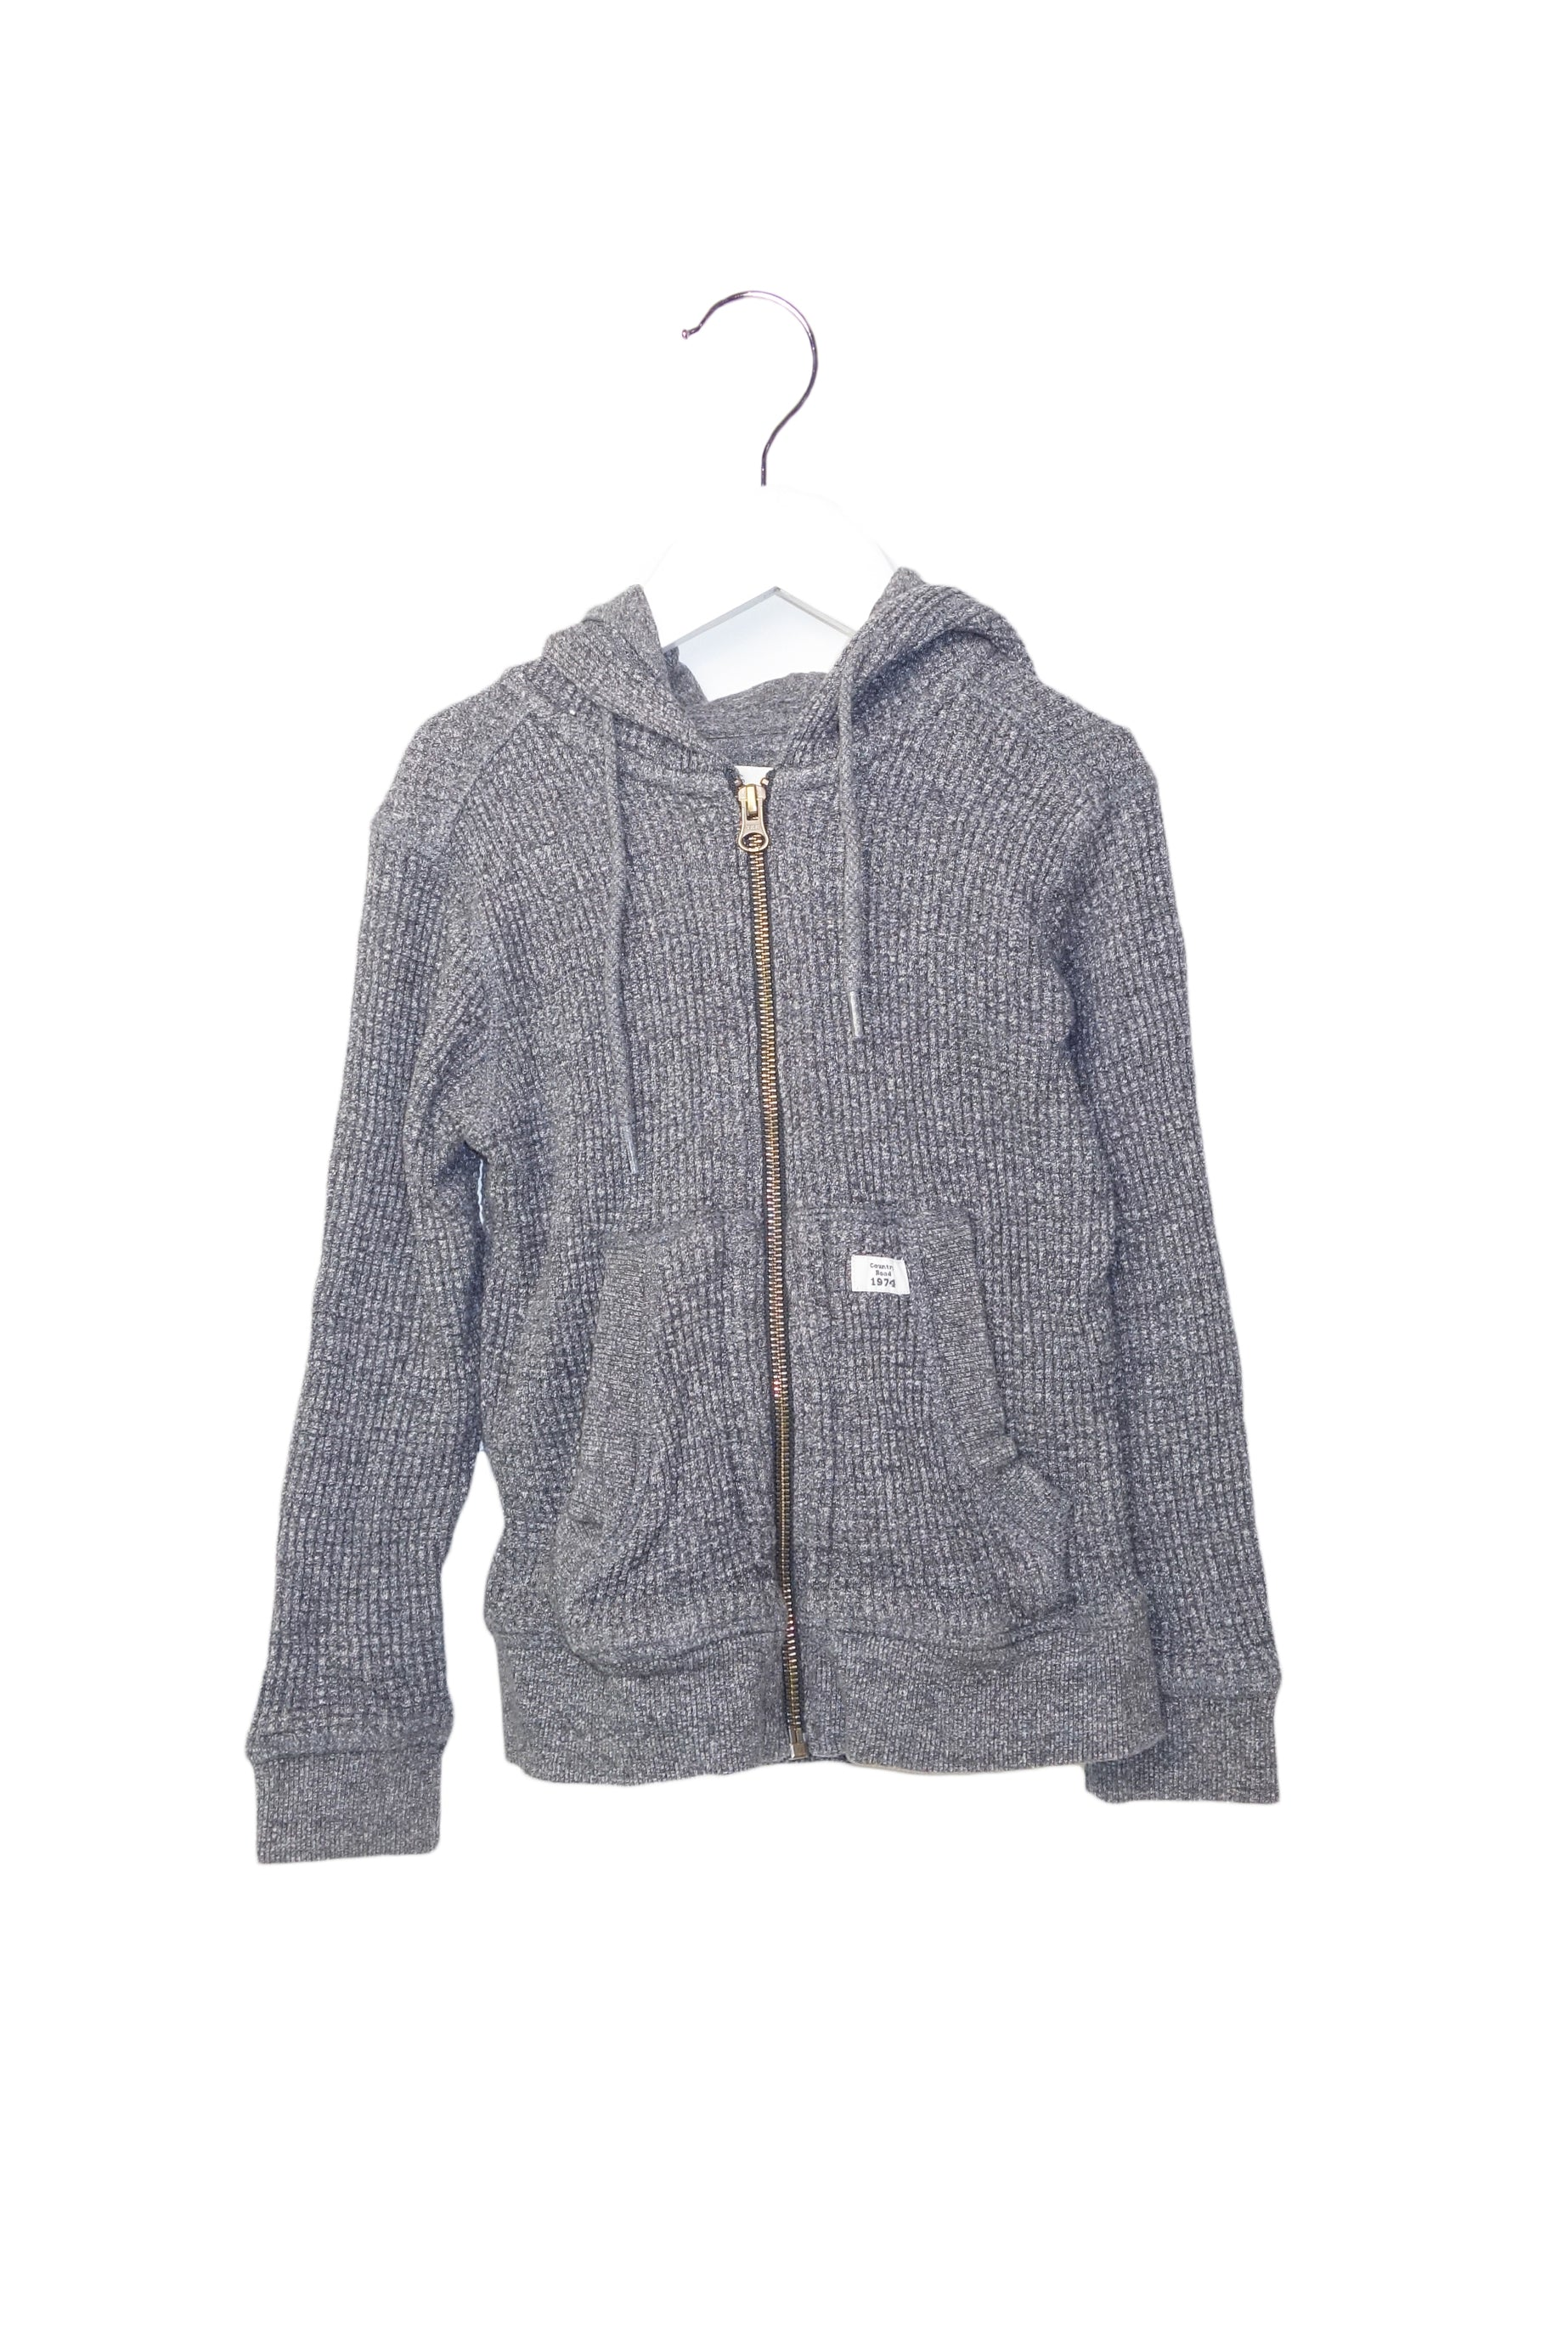 10014682 Country Road Kids ~ Jacket 5T at Retykle